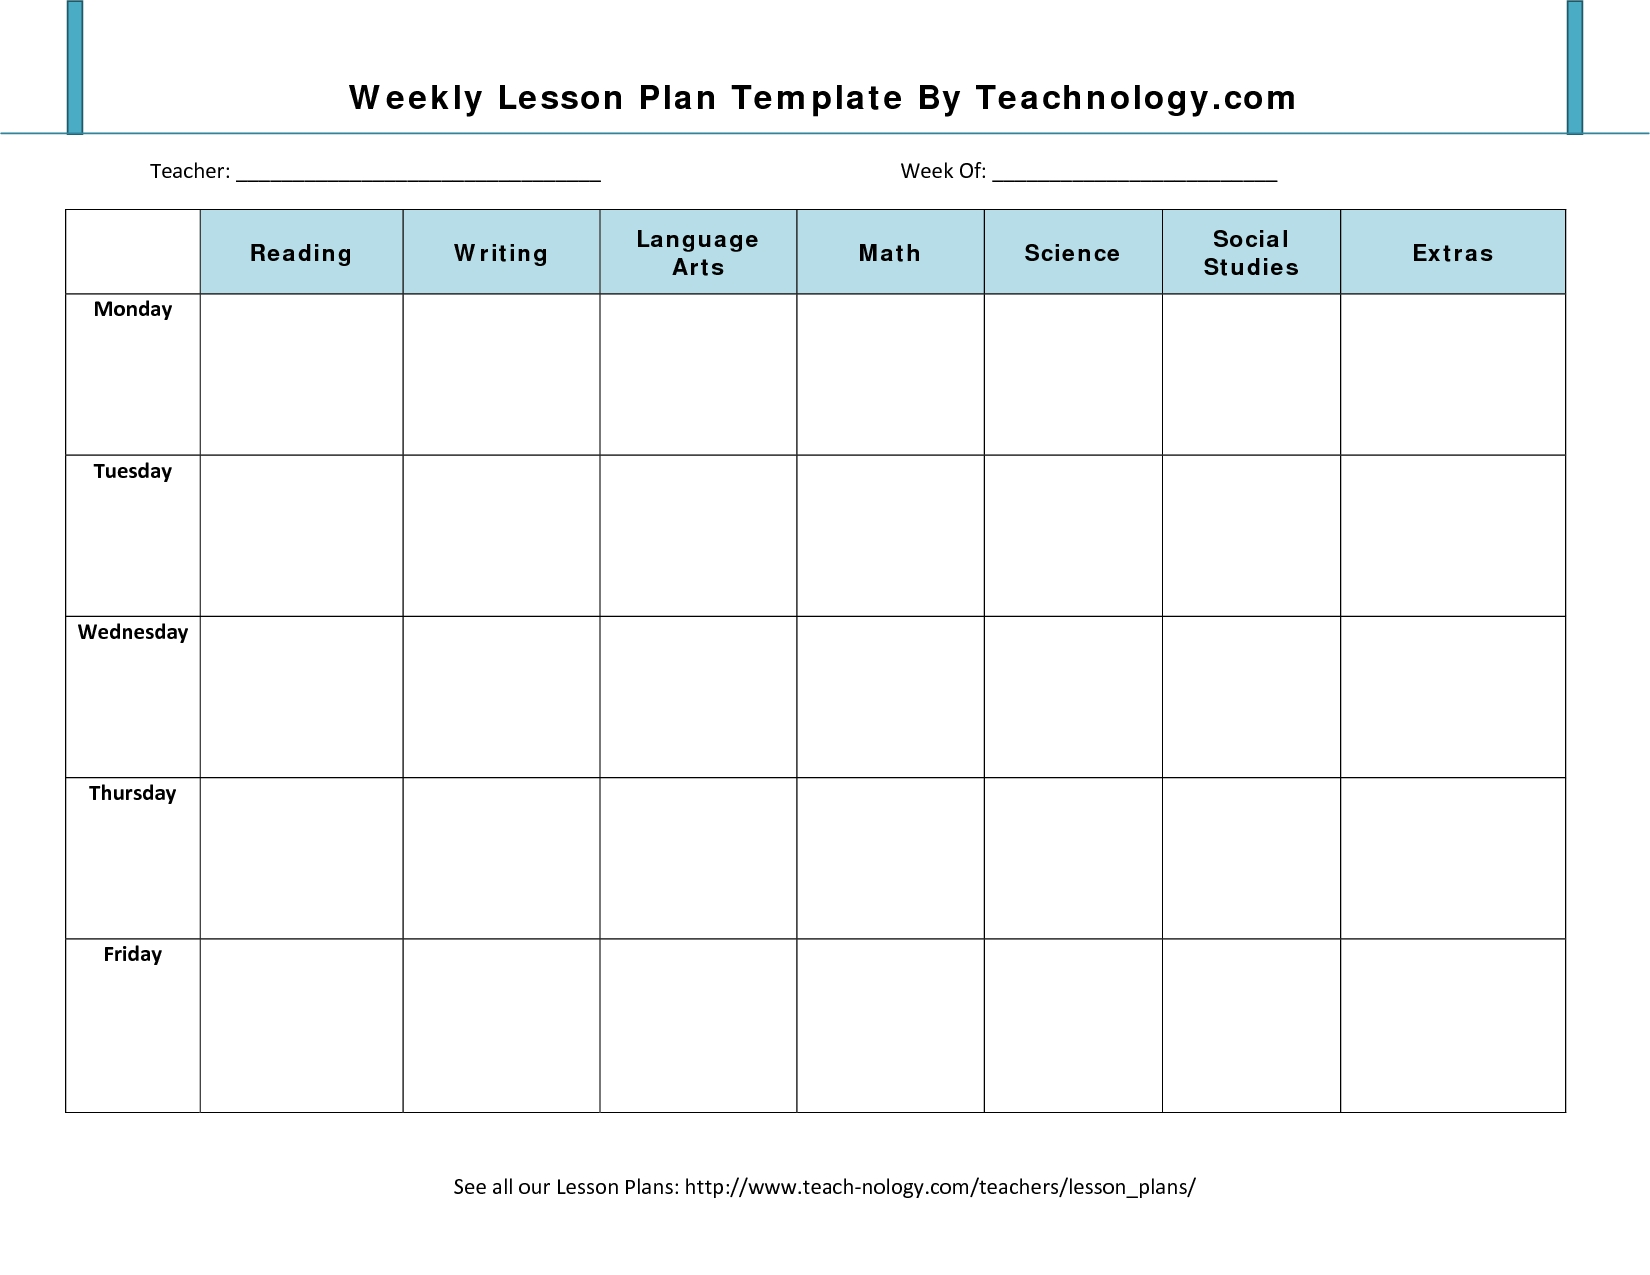 Lesson Plan Format 7 Weekly Lesson Plan Template For with regard to Monthly Lesson Plan Template 2019